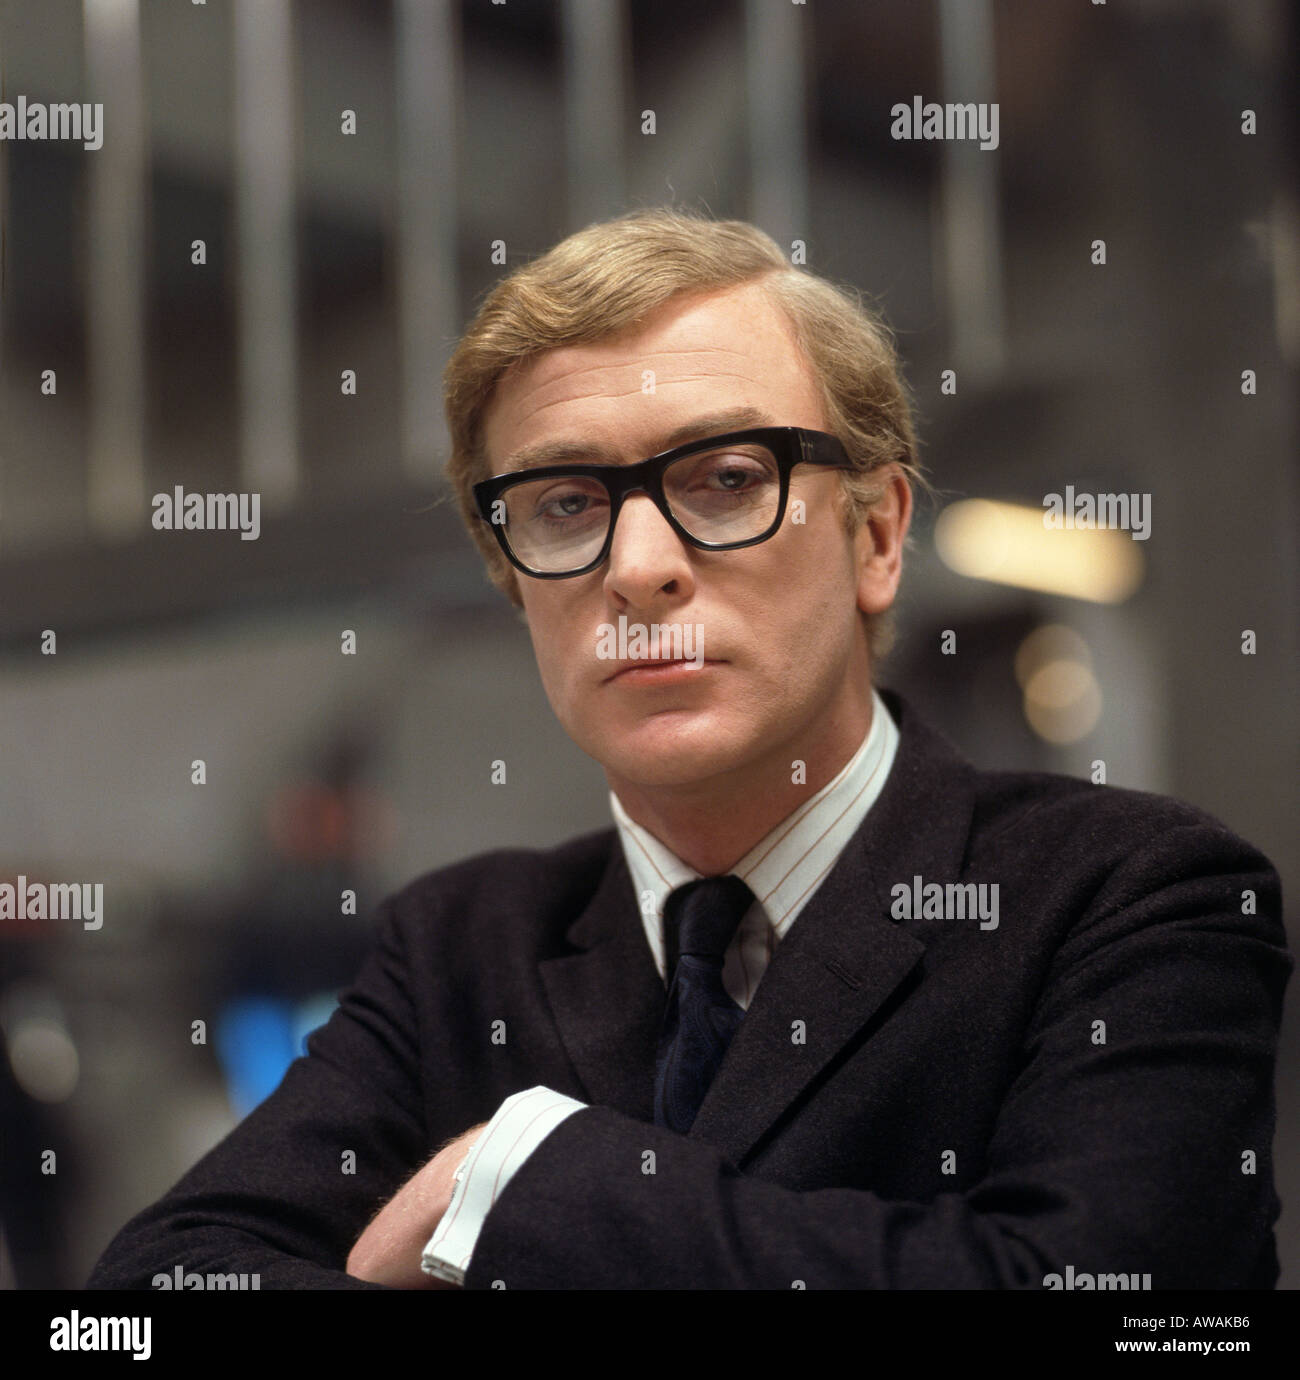 MICHAEL CAINE Stock Photo, Royalty Free Image: 5393333